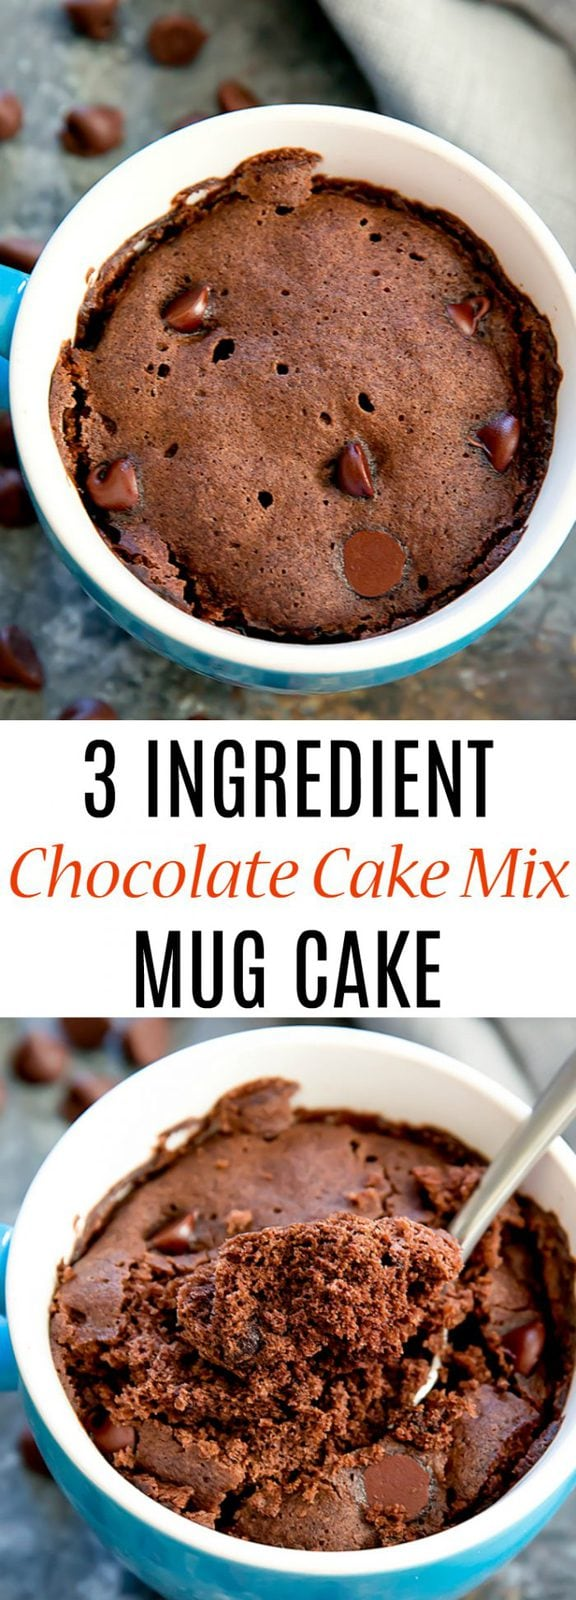 Ingredient Chocolate Mug Cake